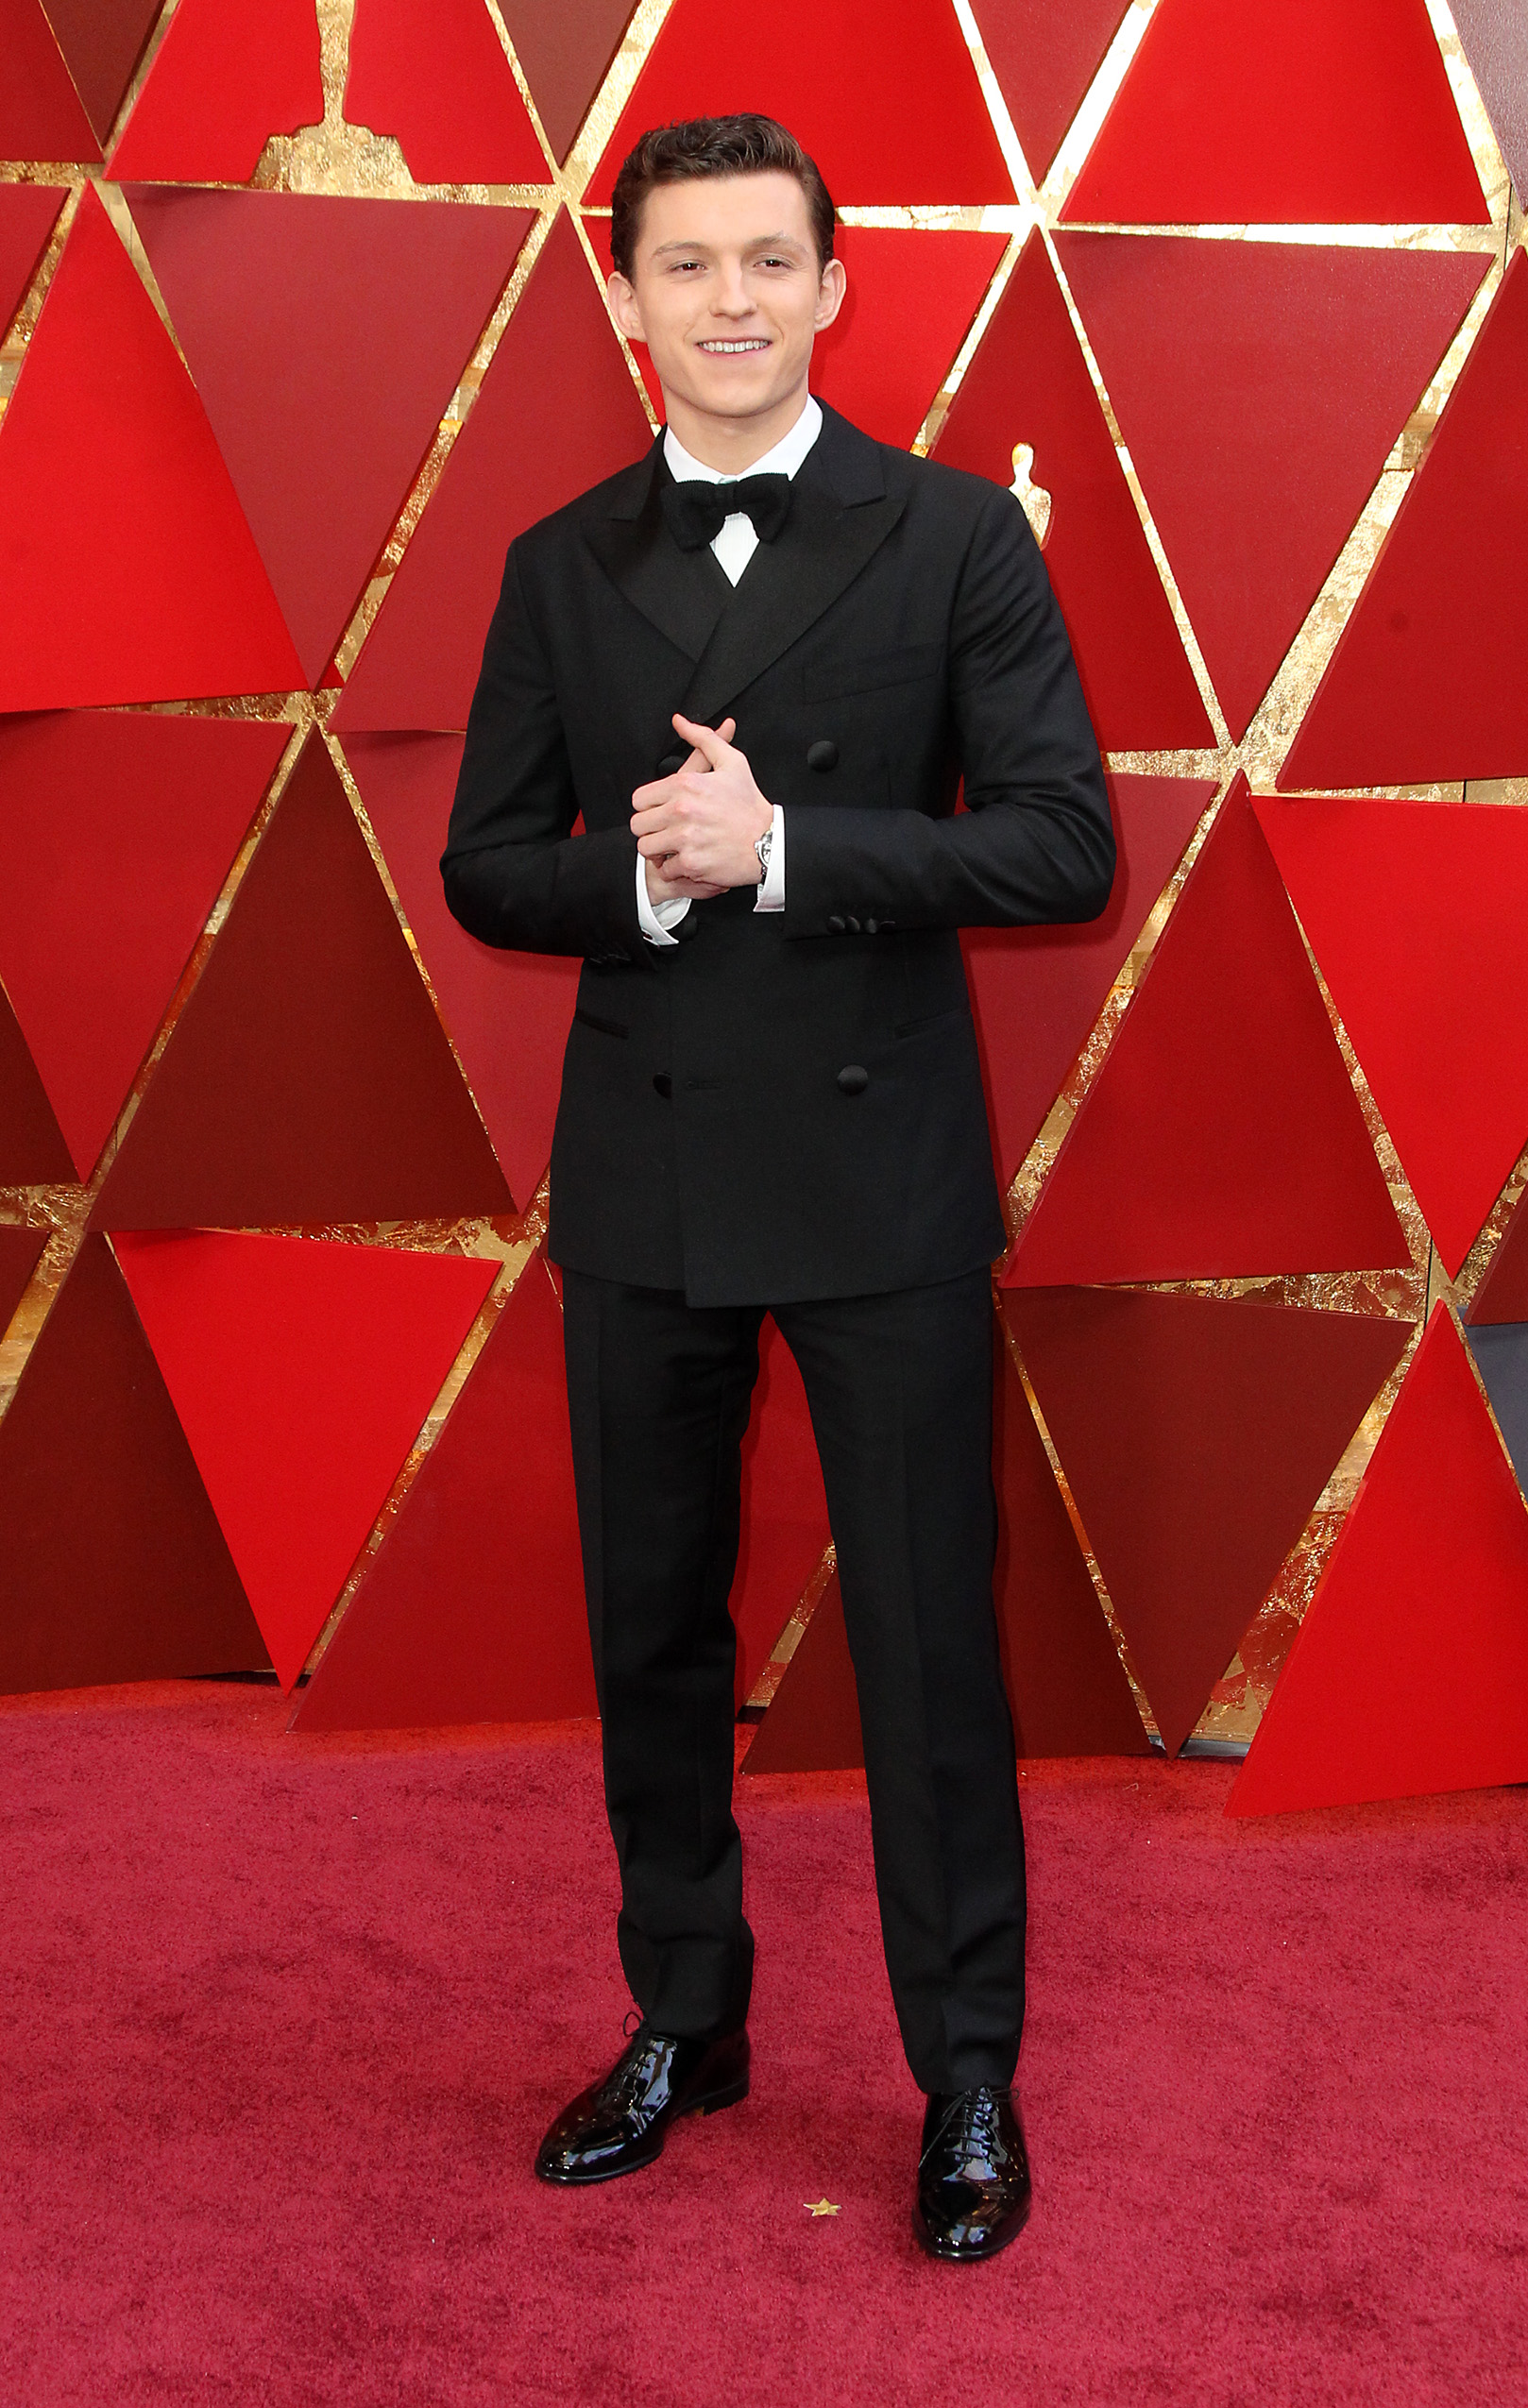 Tom Hollandarrives at the 90th Annual Academy Awards (Oscars) held at the Dolby Theater in Hollywood, California. (Image: Adriana M. Barraza/WENN.com)<p></p>